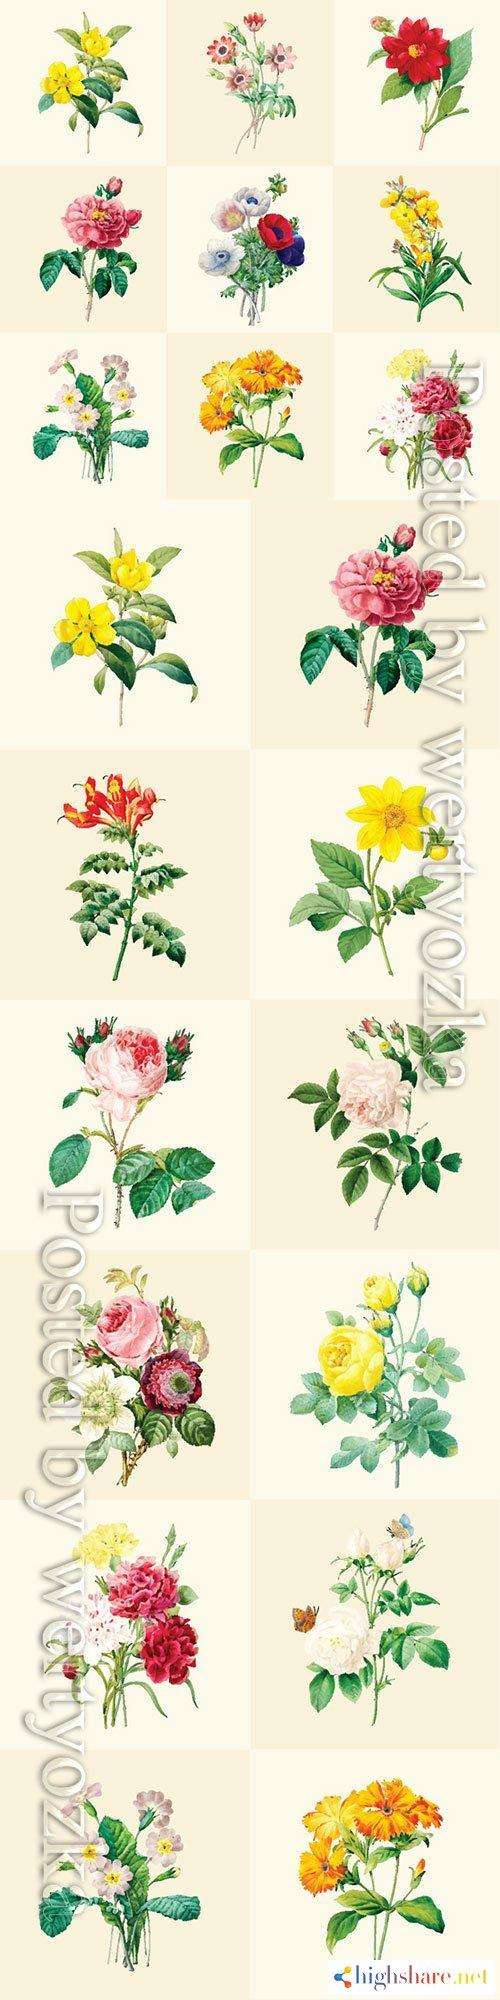 beautiful blooming flowers in vector 5f41e5c00561e - Beautiful blooming flowers in vector